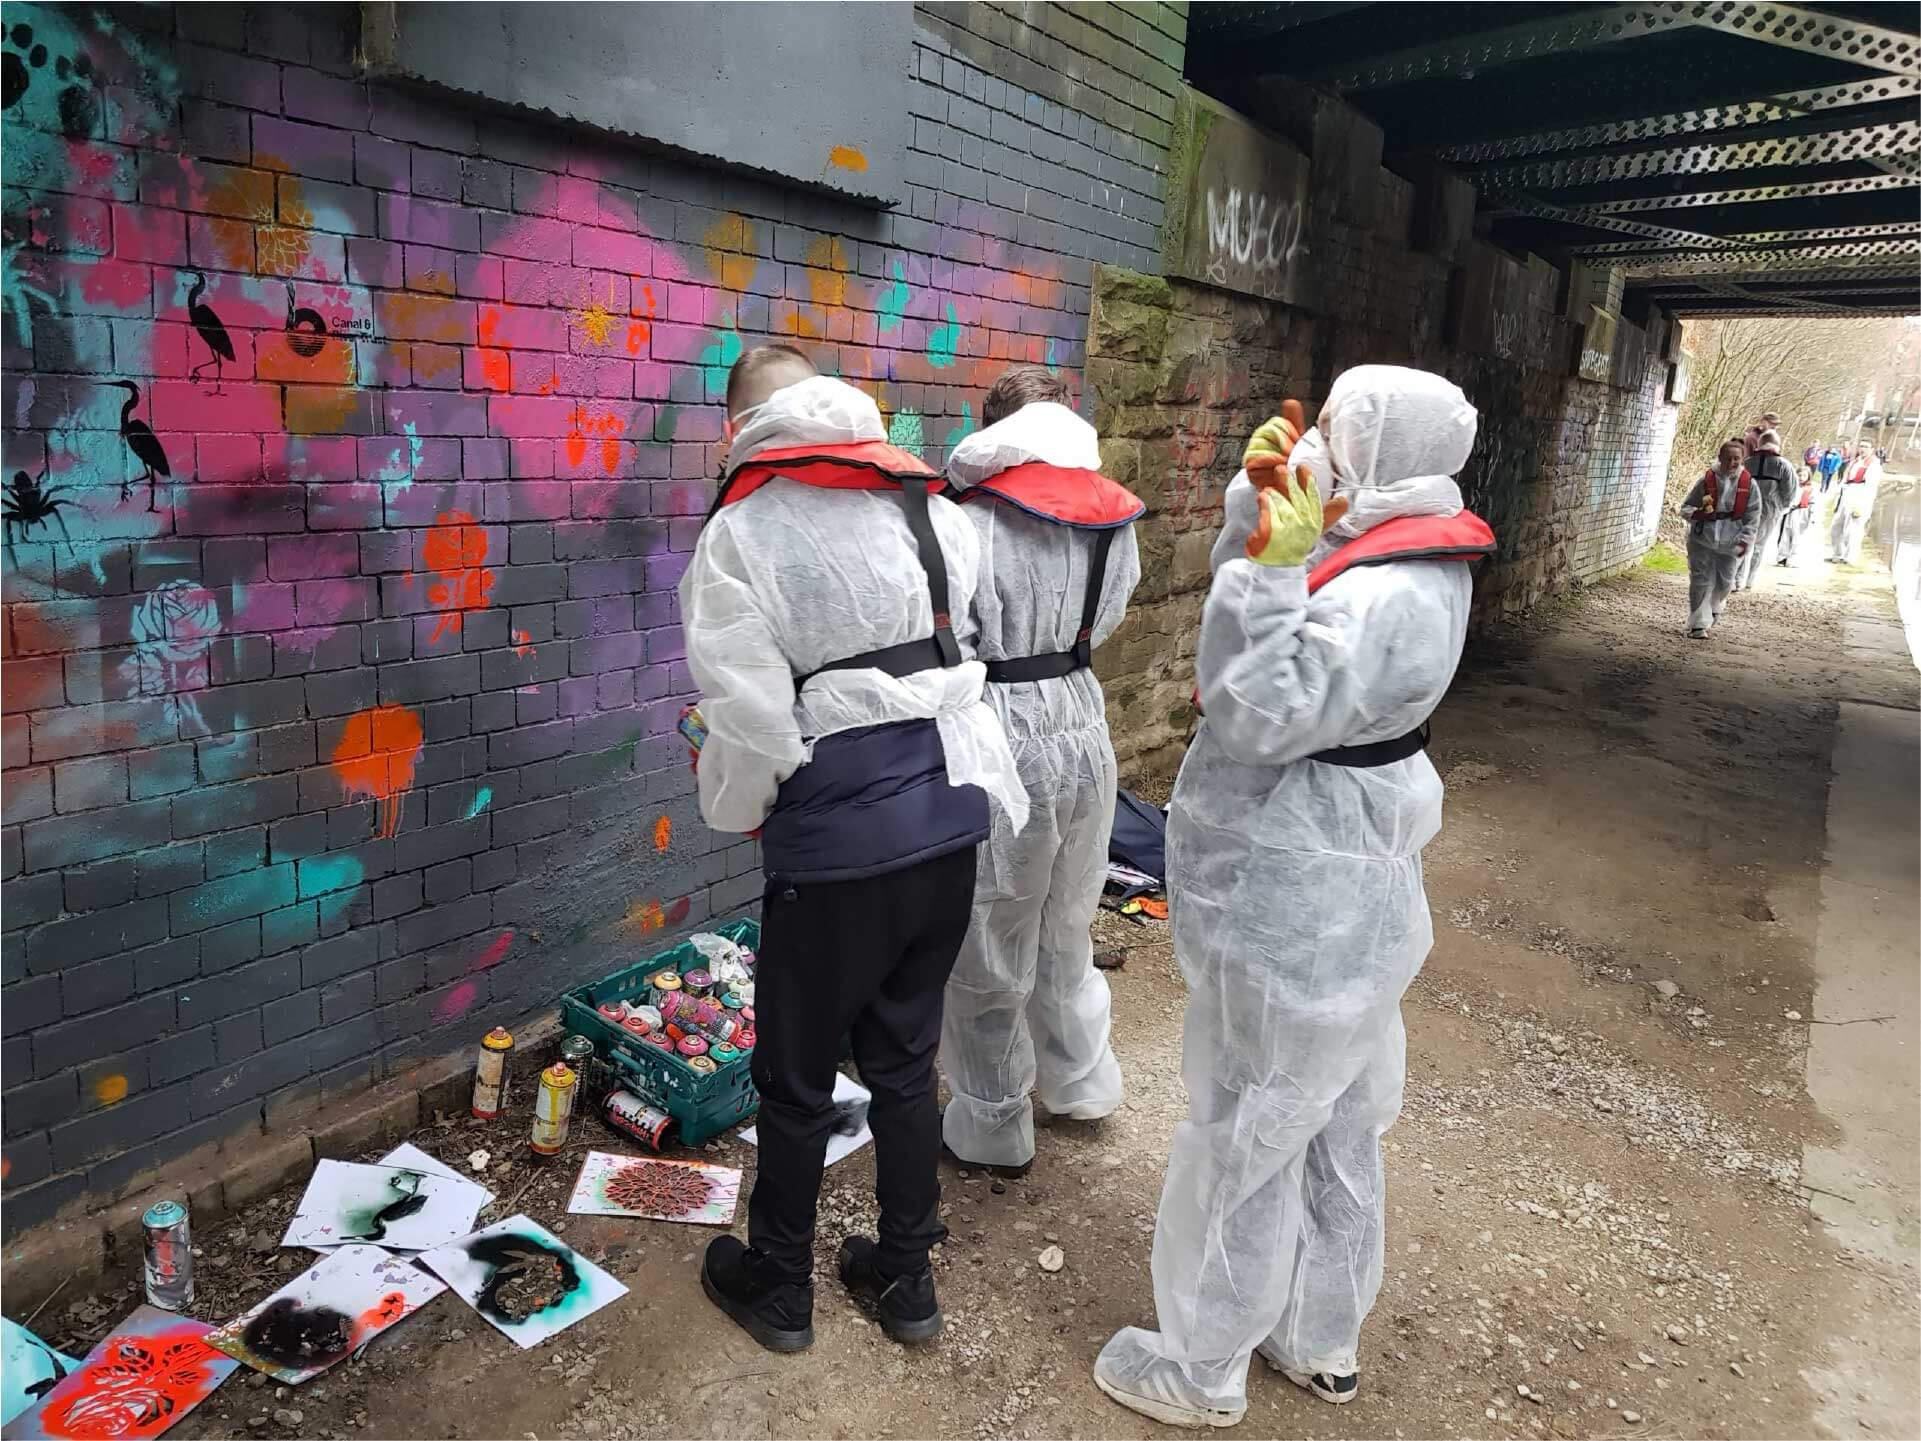 3 young people in protective clothing using spray-paint to paint a mural on a wall